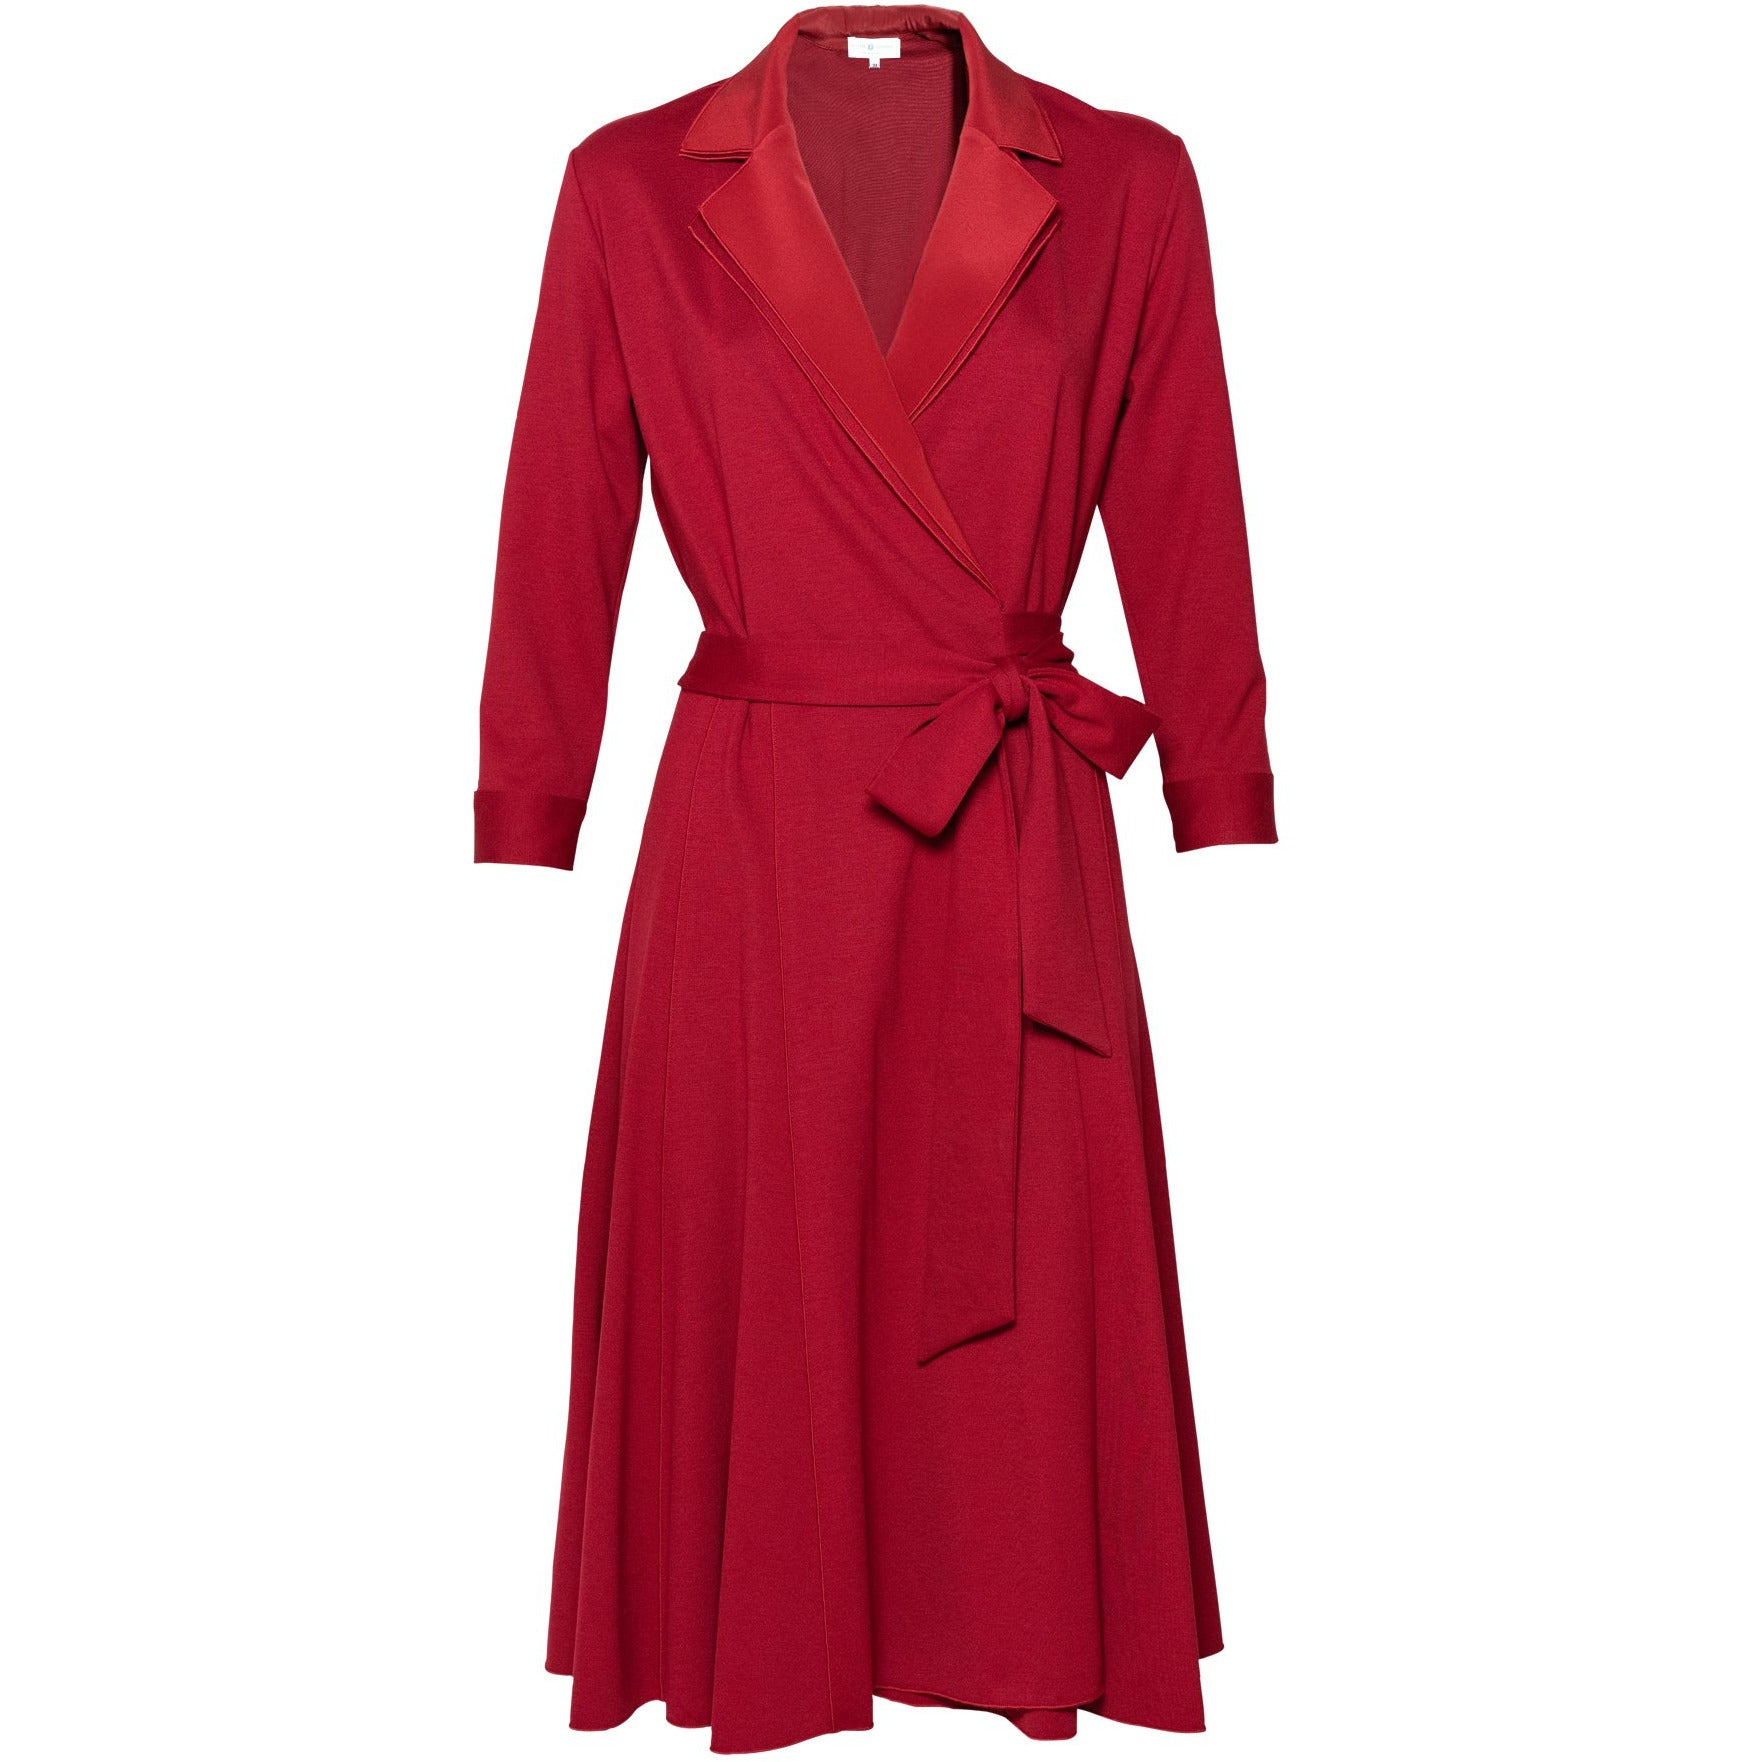 Layered Collar Wrap Dress in Red